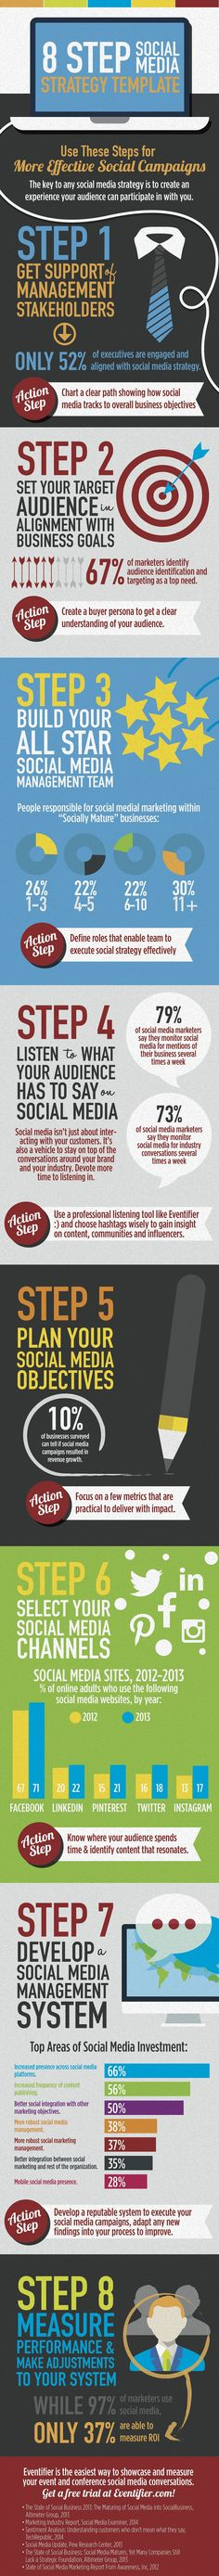 8 Step Social Media Marketing Strategy Template #infographic #SocialMedia #SMM #Marketing